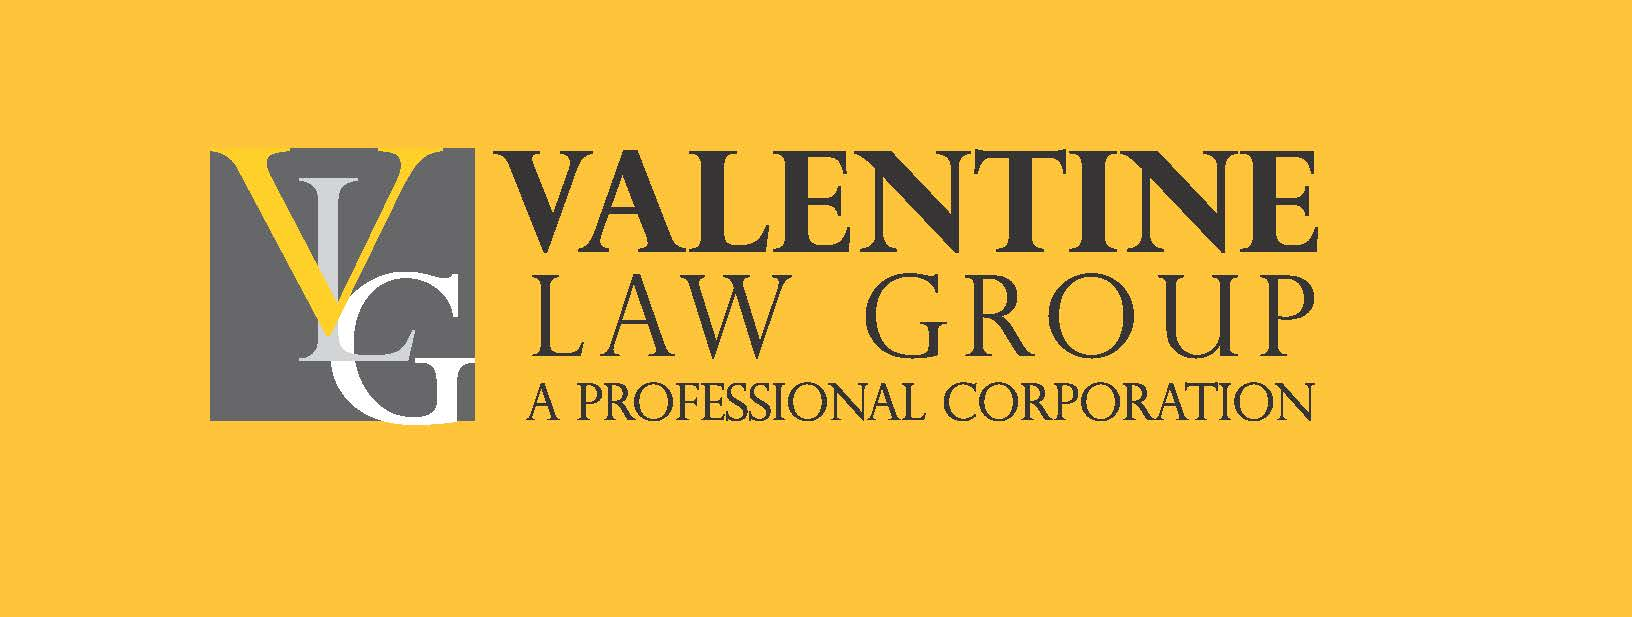 Valentine Law Group